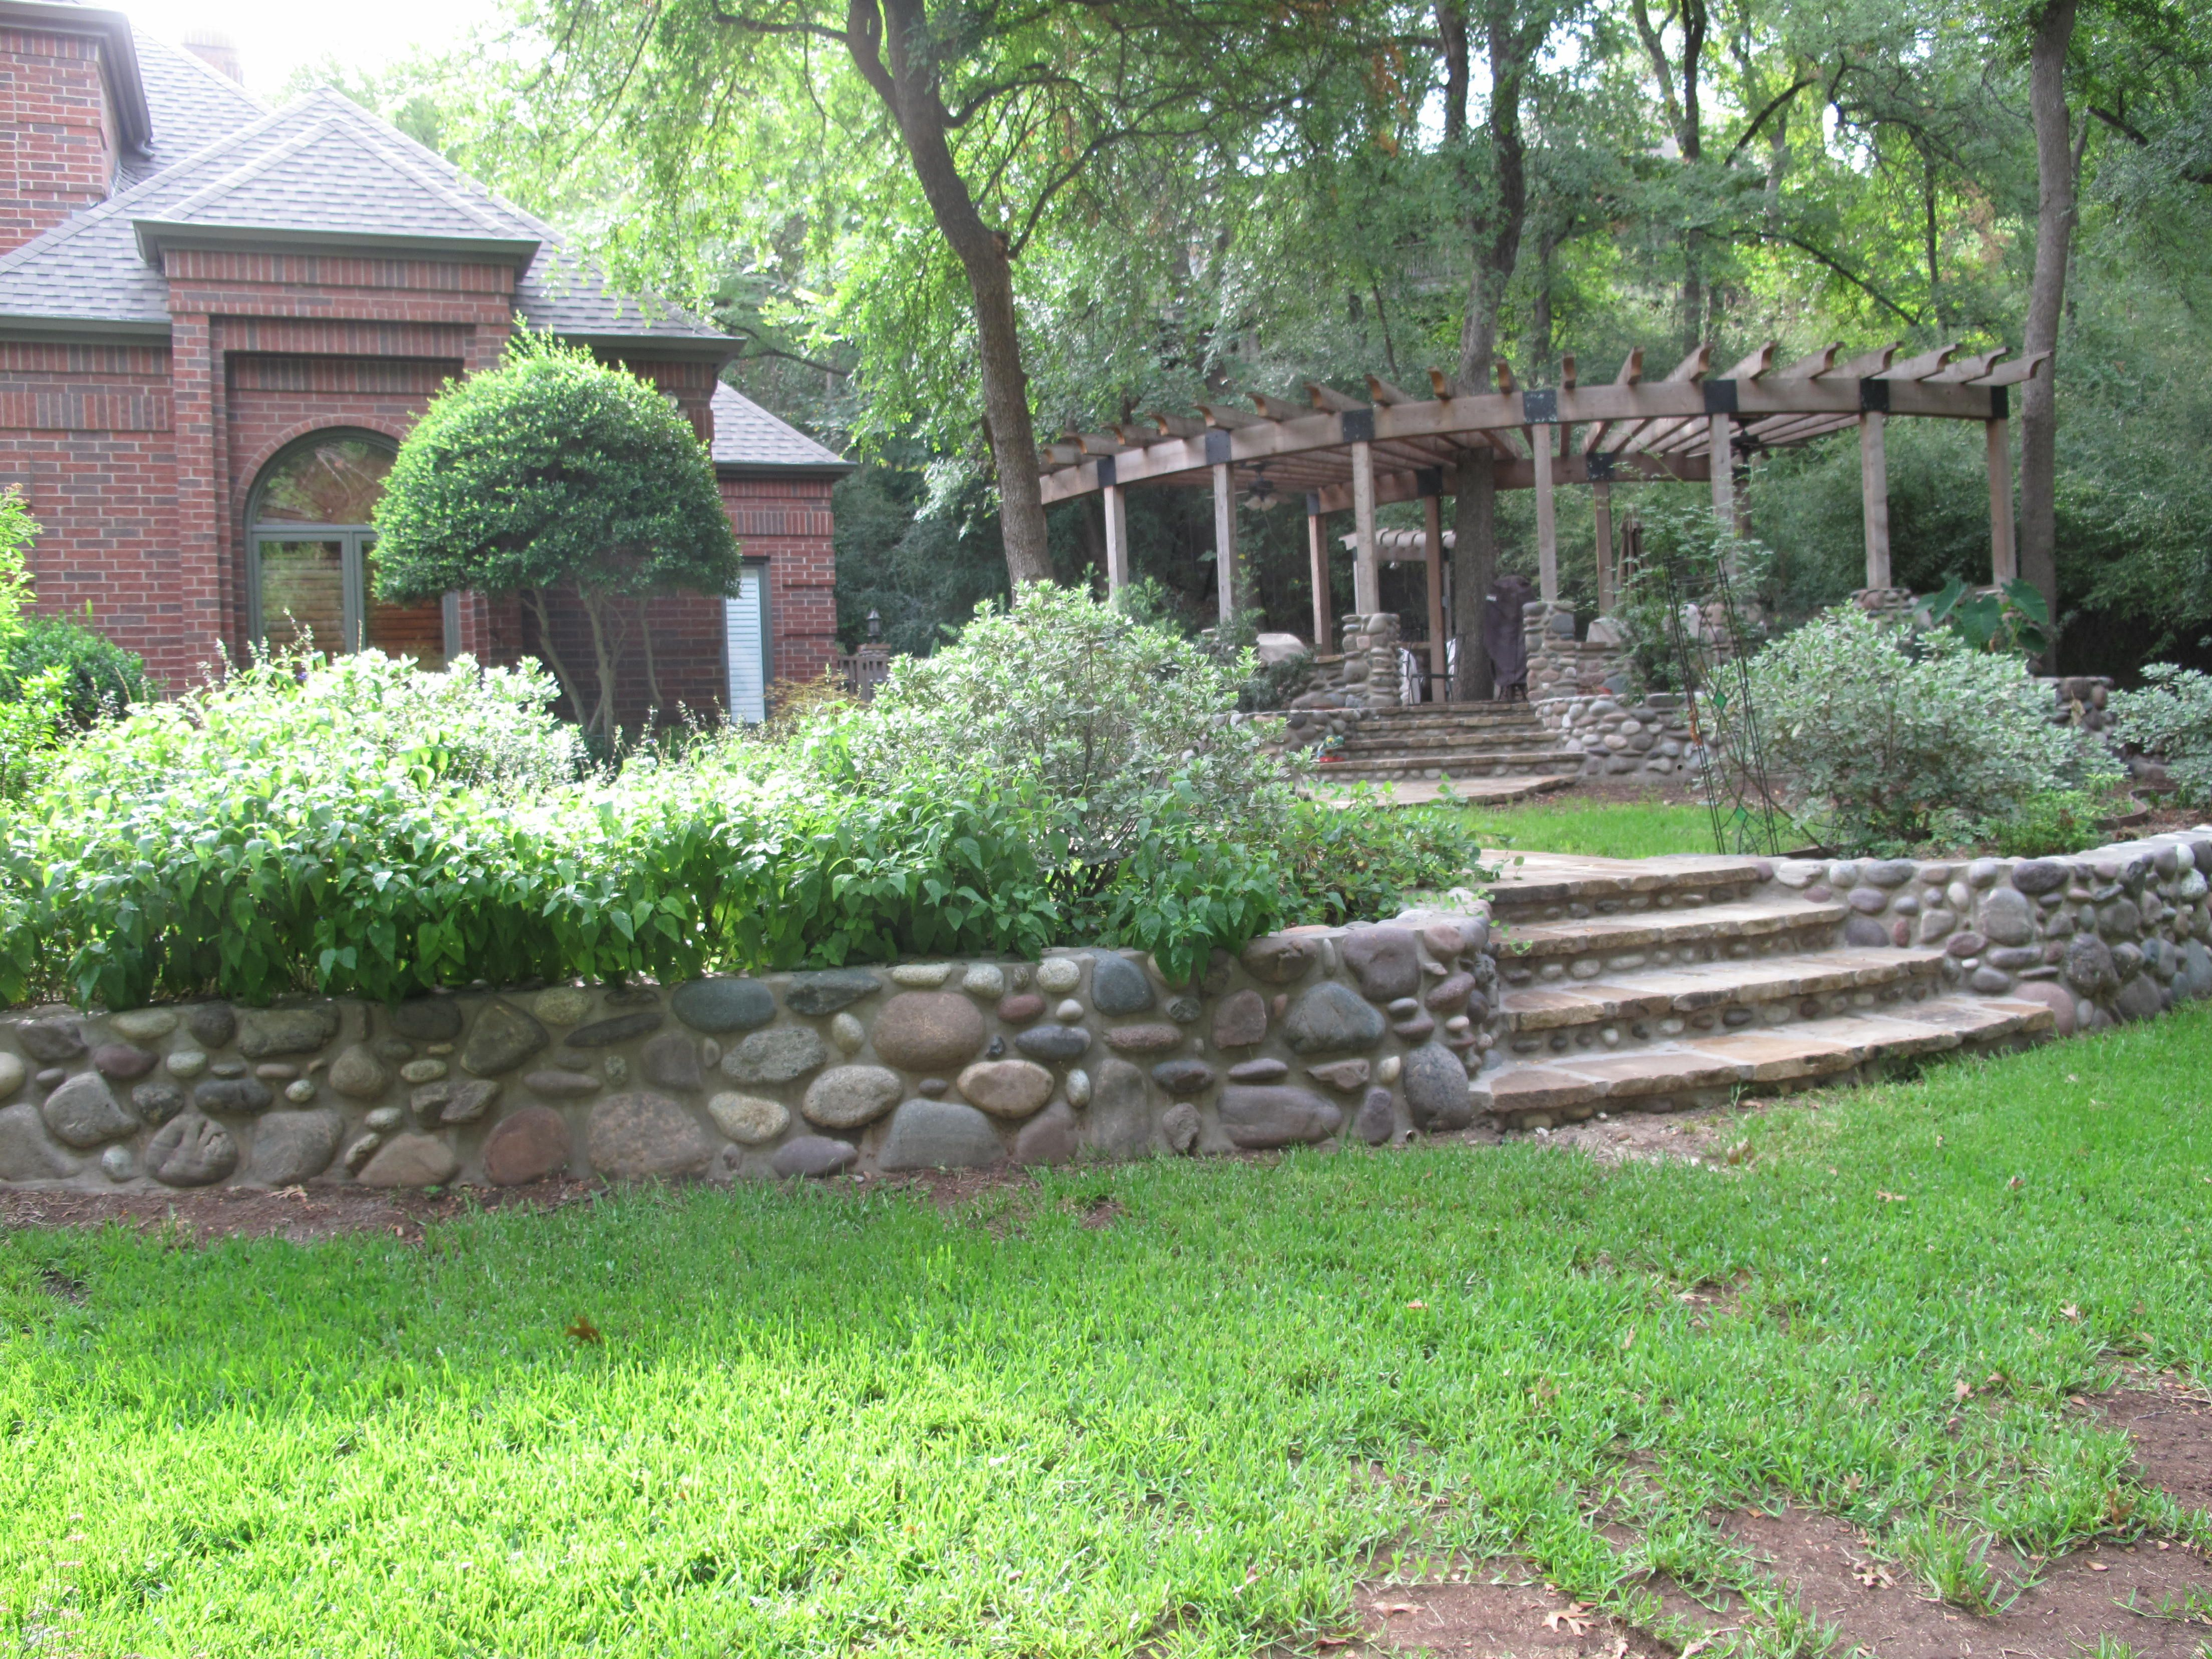 We Terraced This Hill Side With River Rock As Well As The Foundation To The Grill And Patio Area We Farmhouse Landscaping Outdoor Living Space Outdoor Living